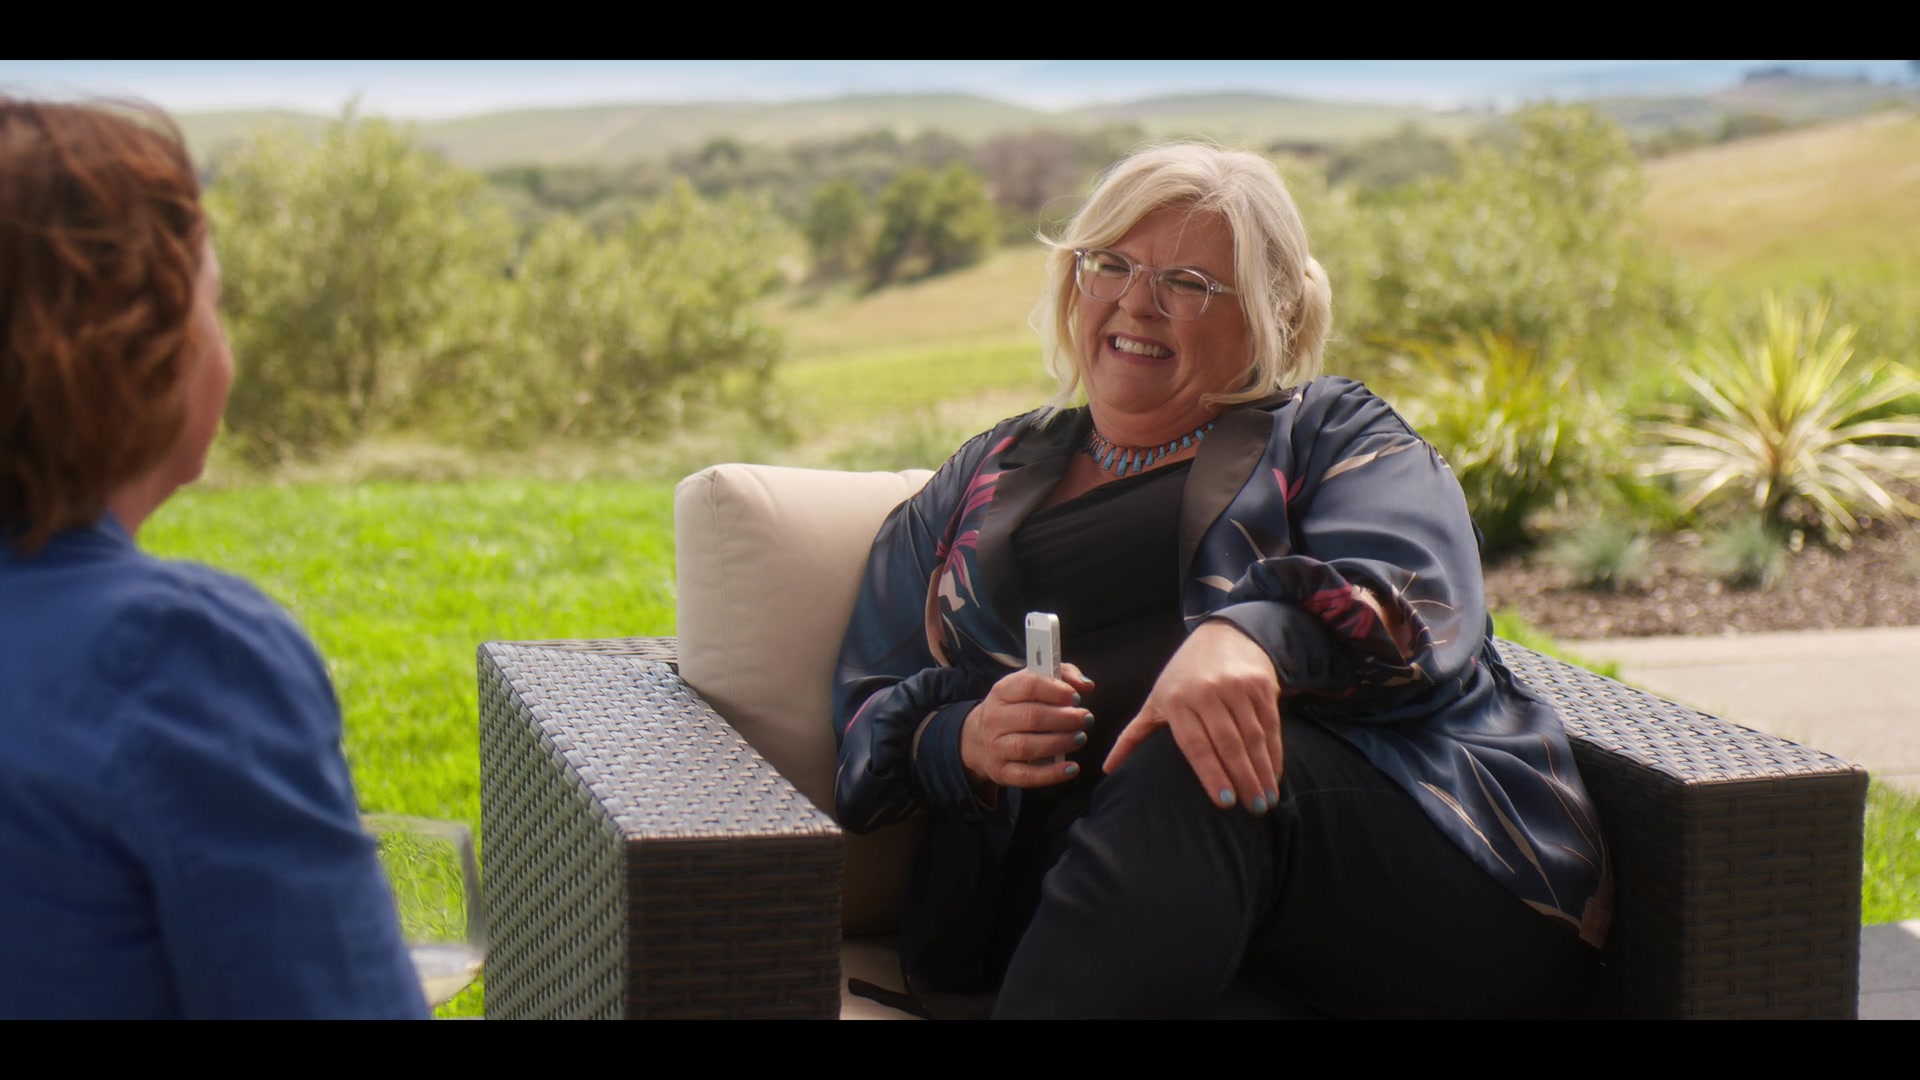 Apple Iphone Smartphone Used By Paula Pell In Wine Country 2019